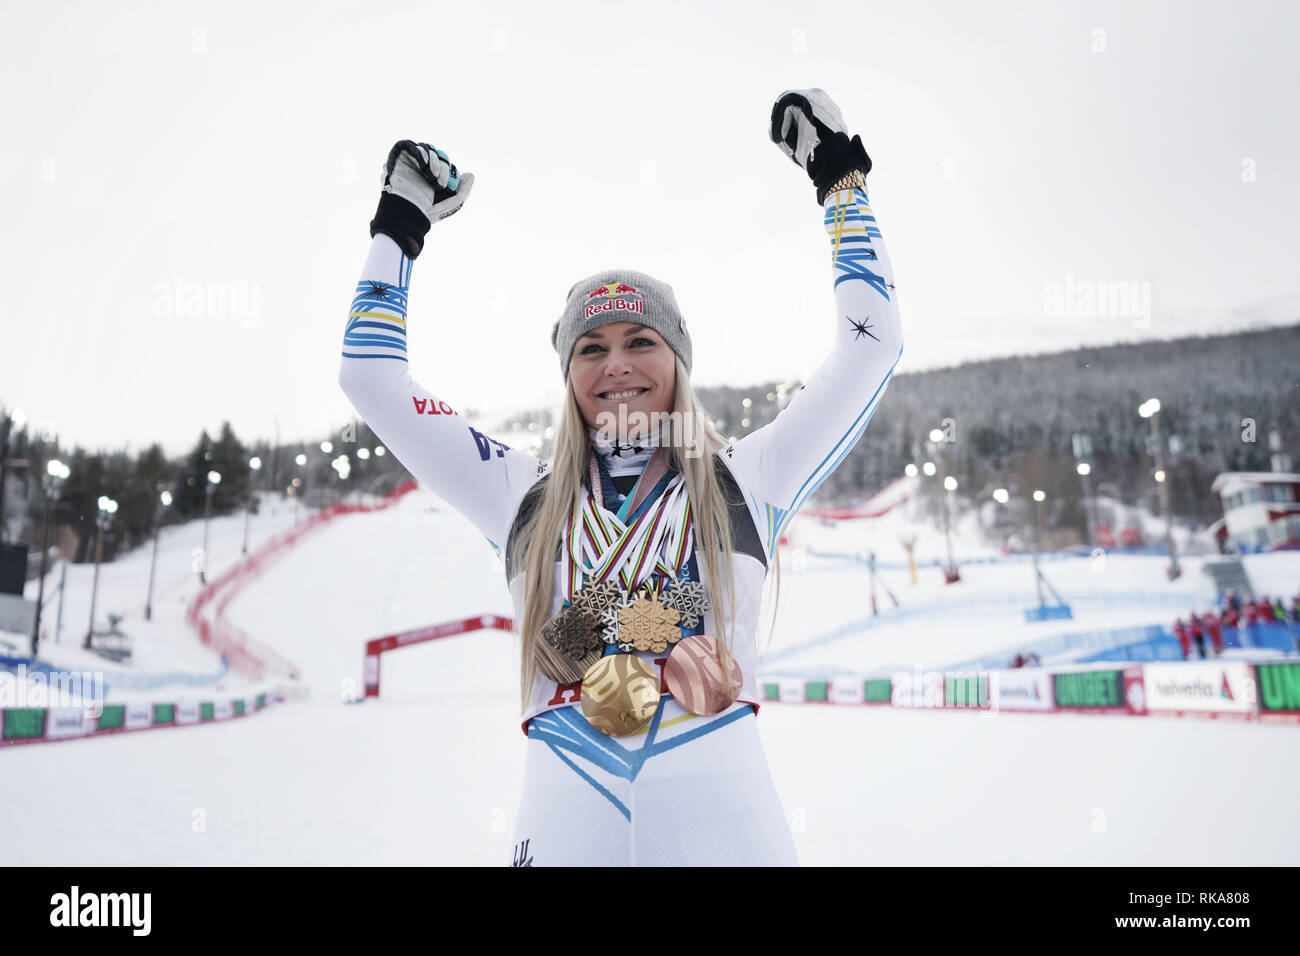 Are, Sweden. 10th Feb, 2019. Alpine skiing, world championship, downhill, ladies: Lindsey Vonn from the USA with all the medals she has won in her career. Credit: Michael Kappeler/dpa/Alamy Live News - Stock Image